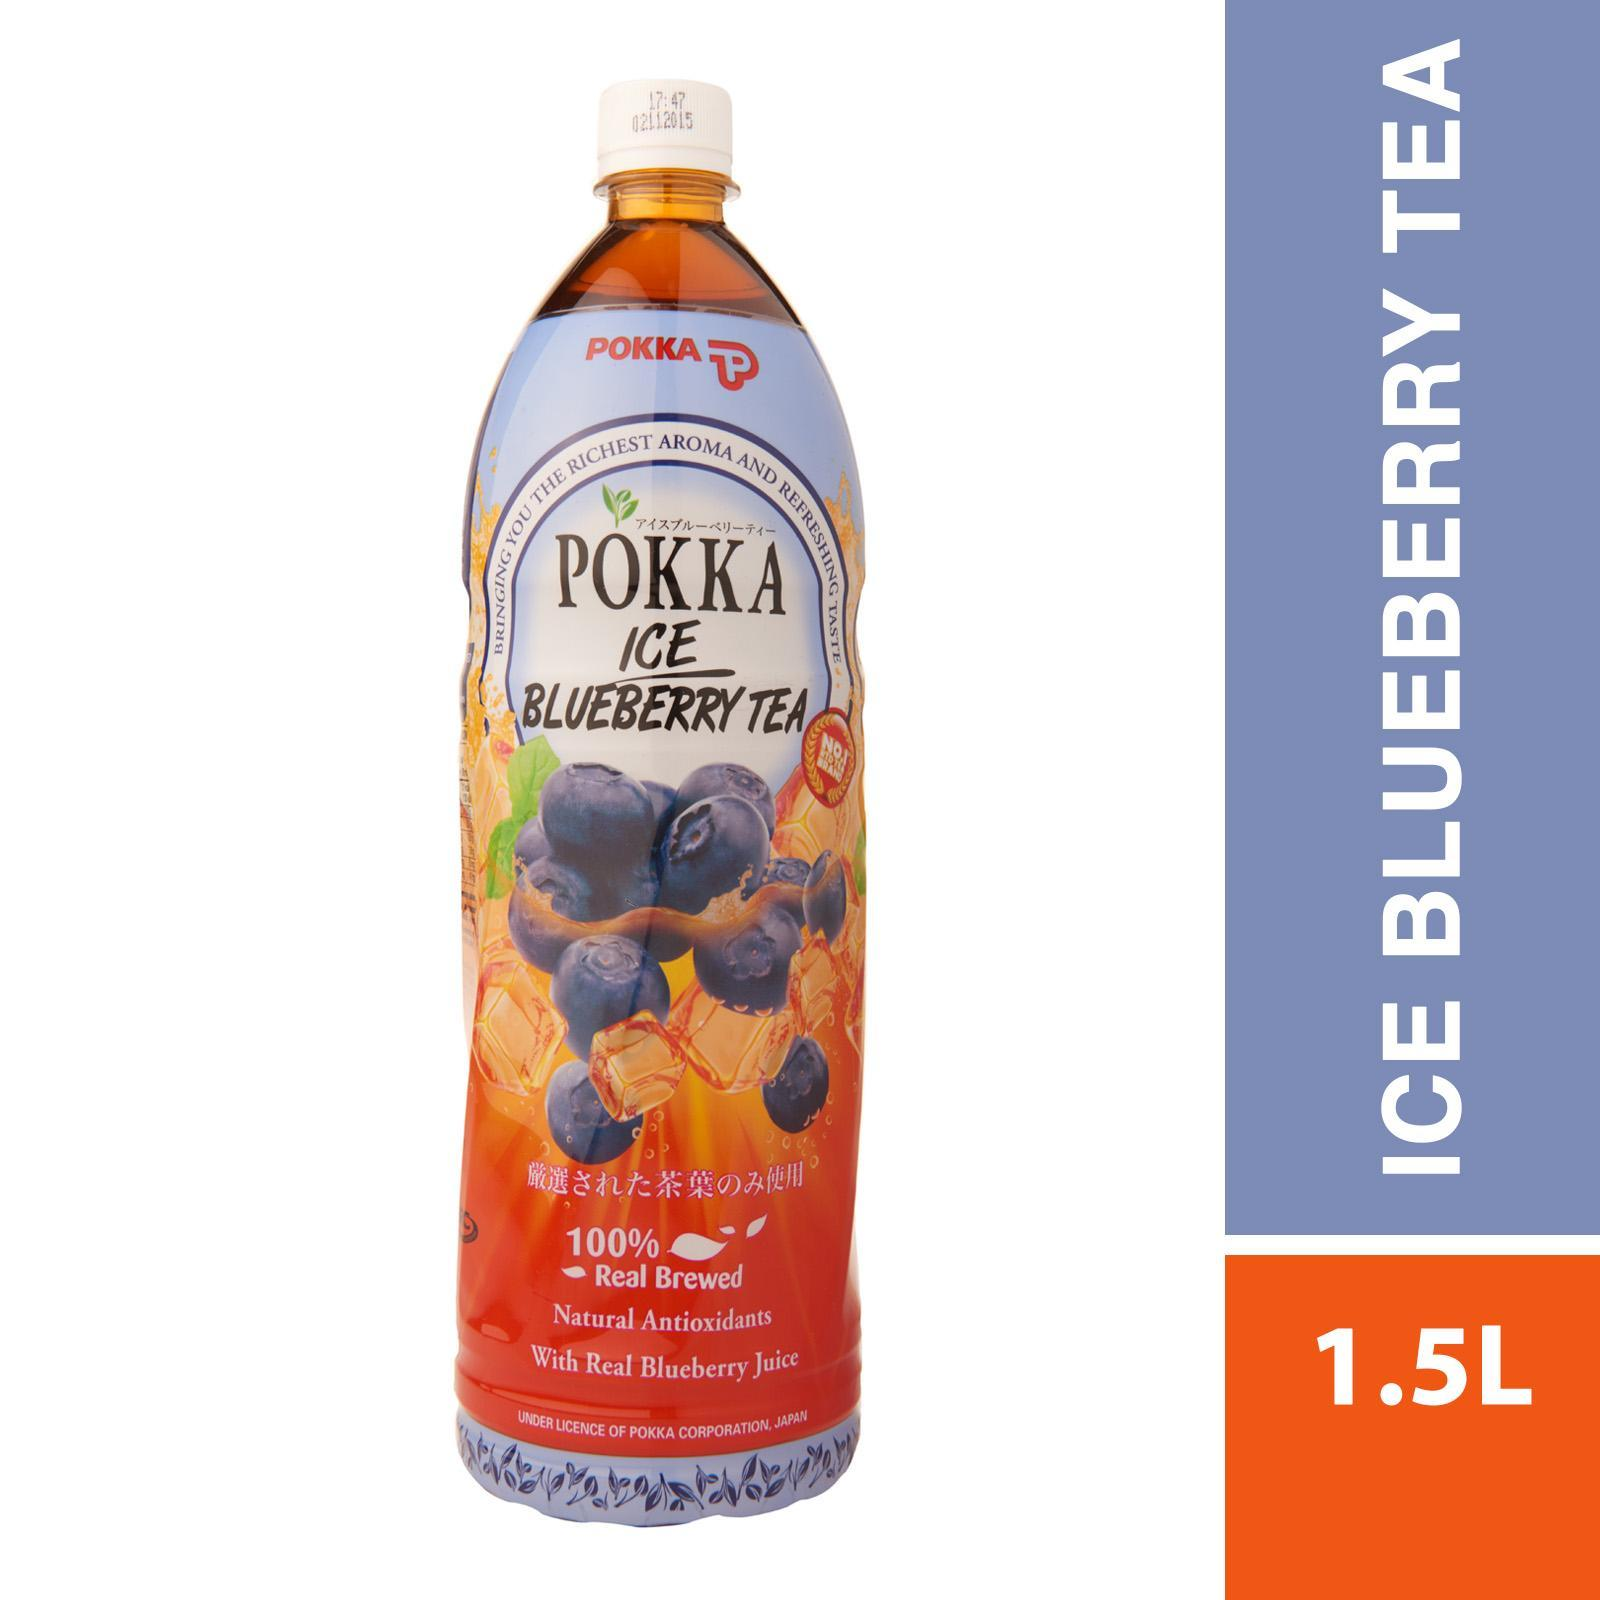 Pokka Bottle Drink - Blueberry Tea